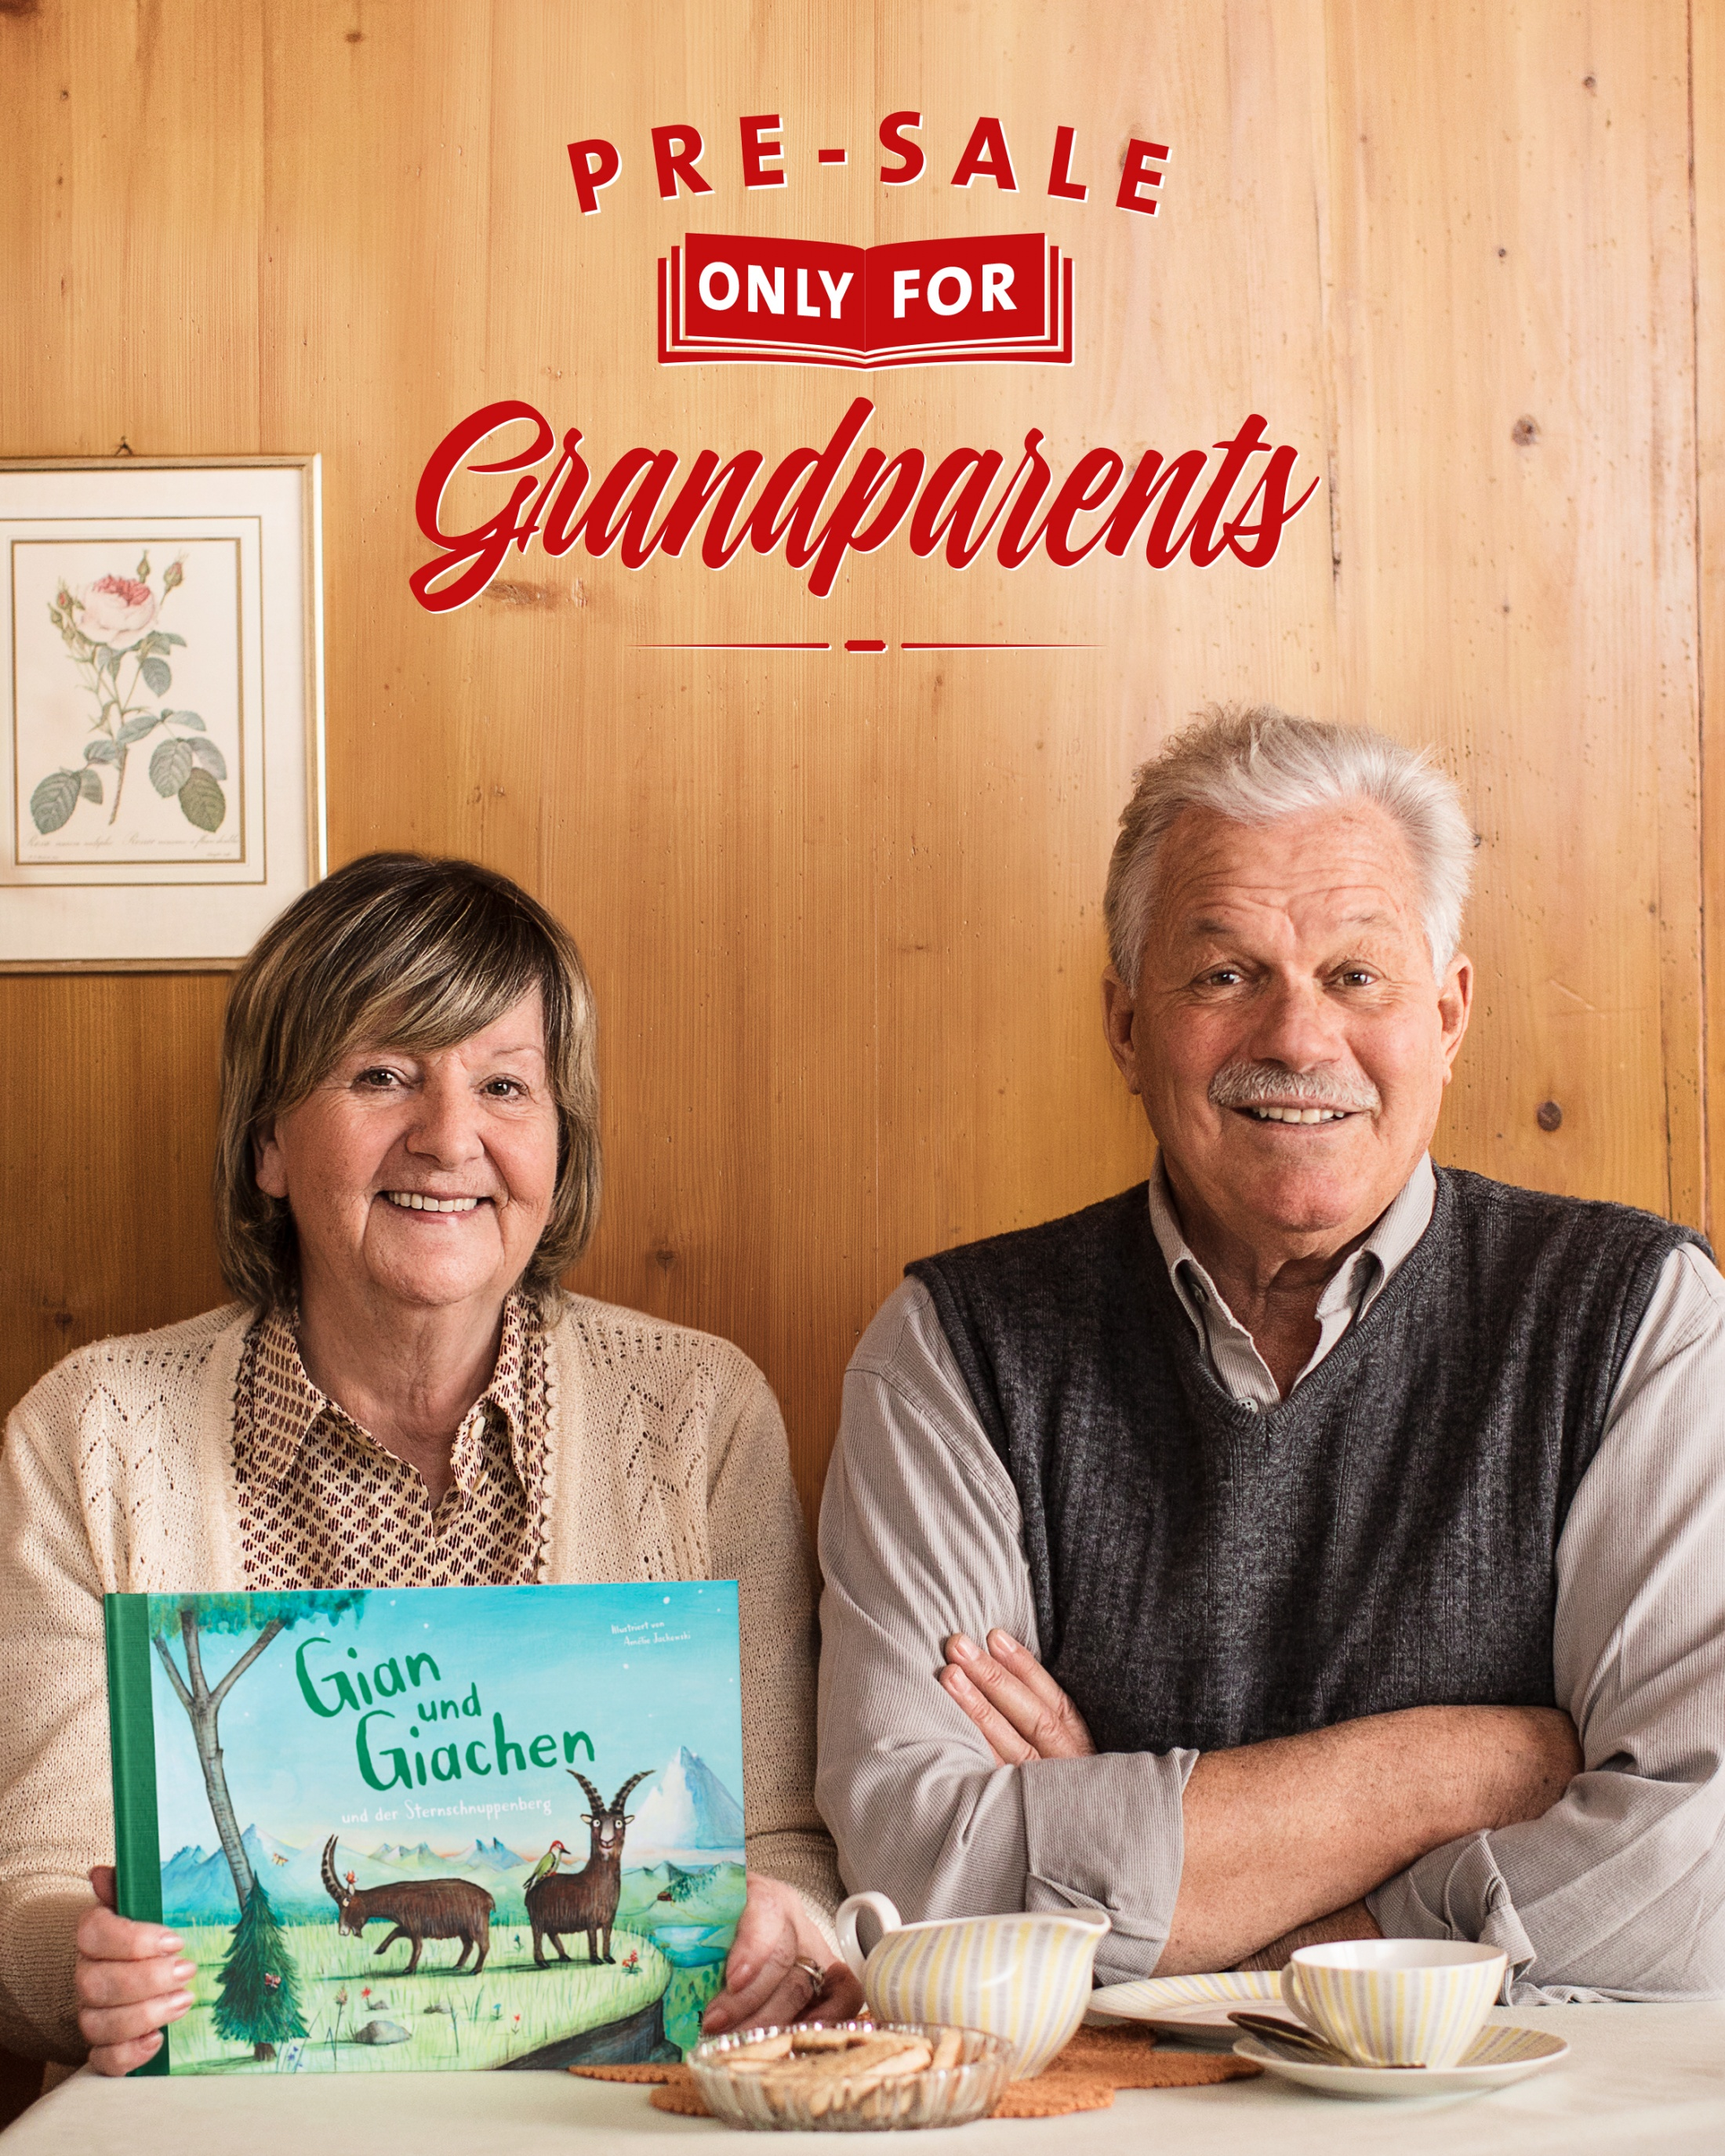 Thumbnail for Grandparents Pre-sale